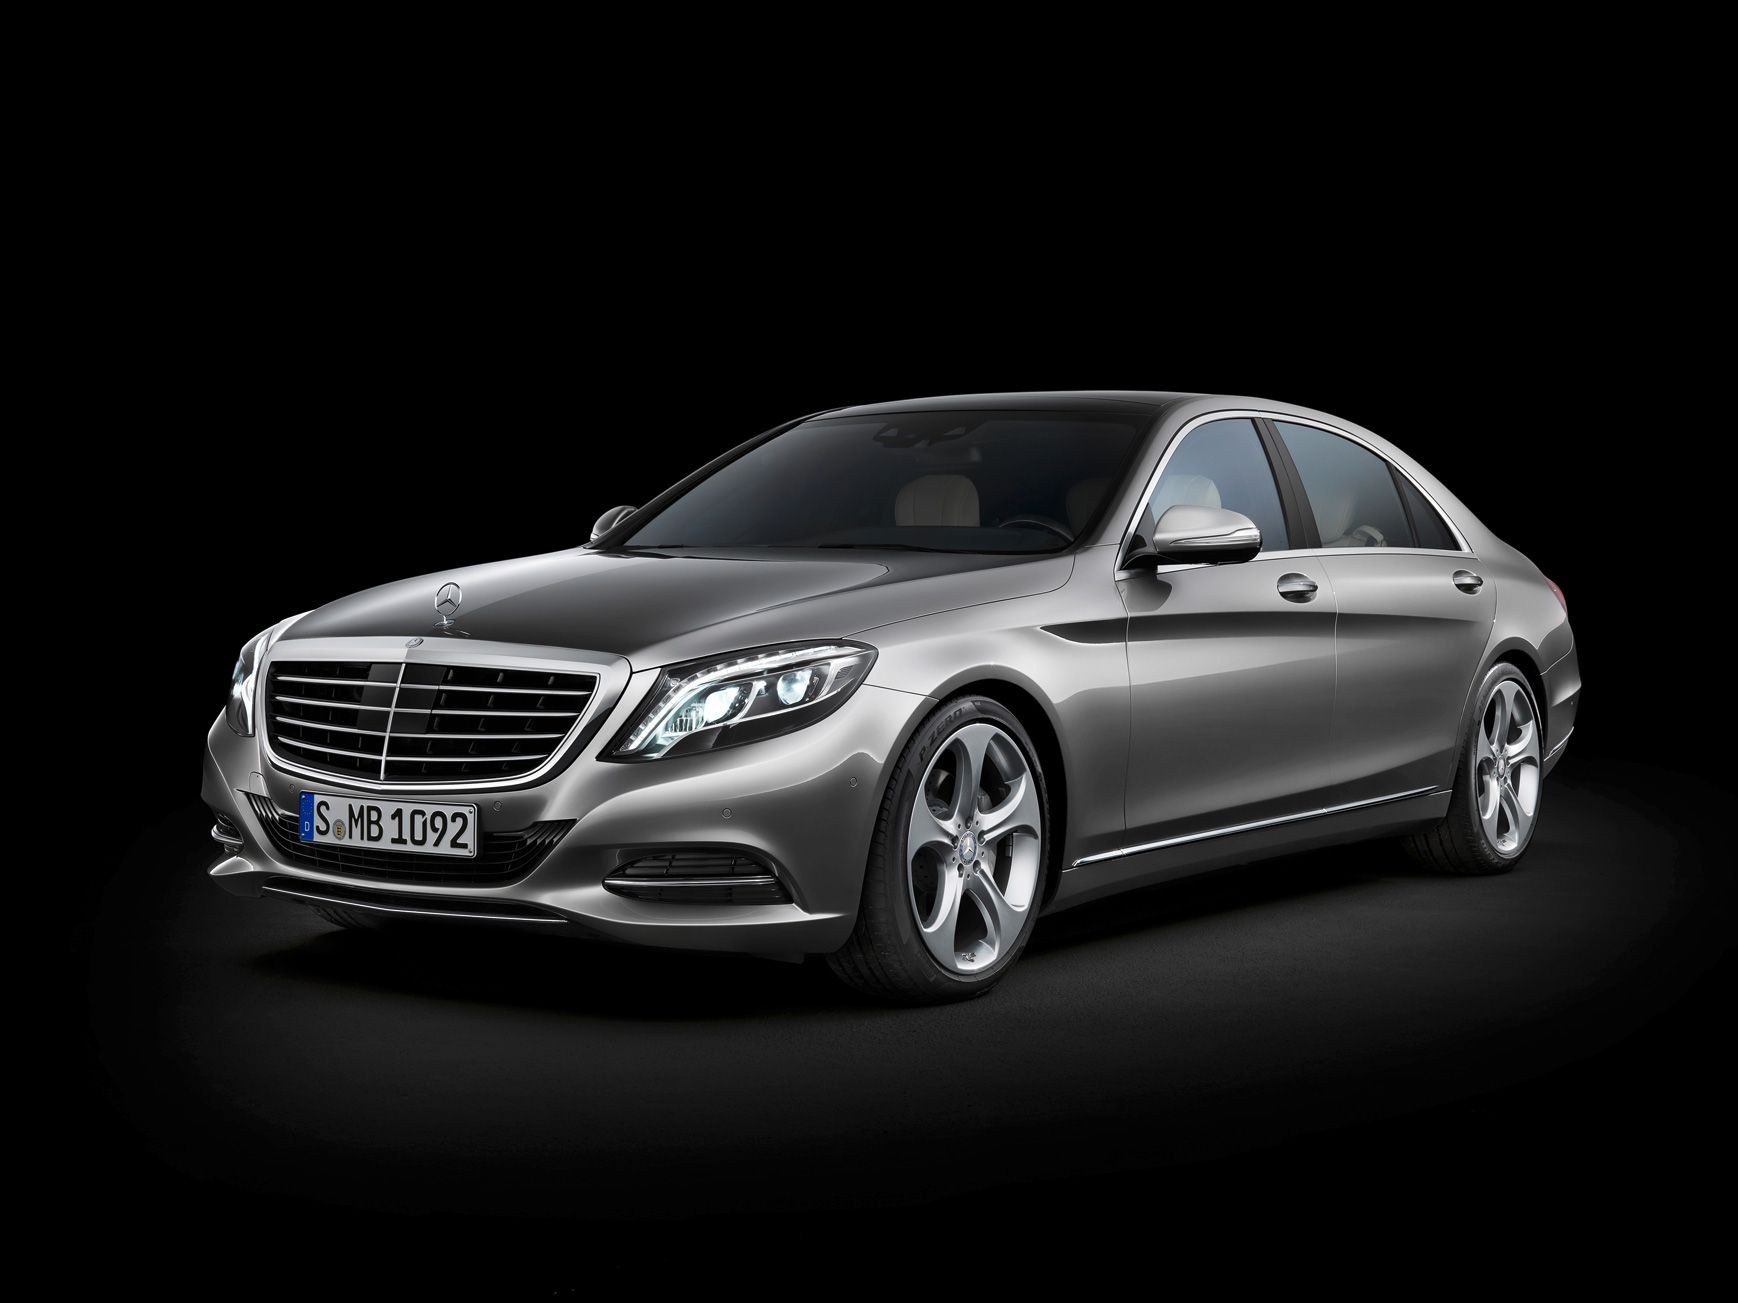 Presenting The All New 2014 S Class It S The Best Car In The World Again Mercedes S Class Benz S Mercedes Benz S550